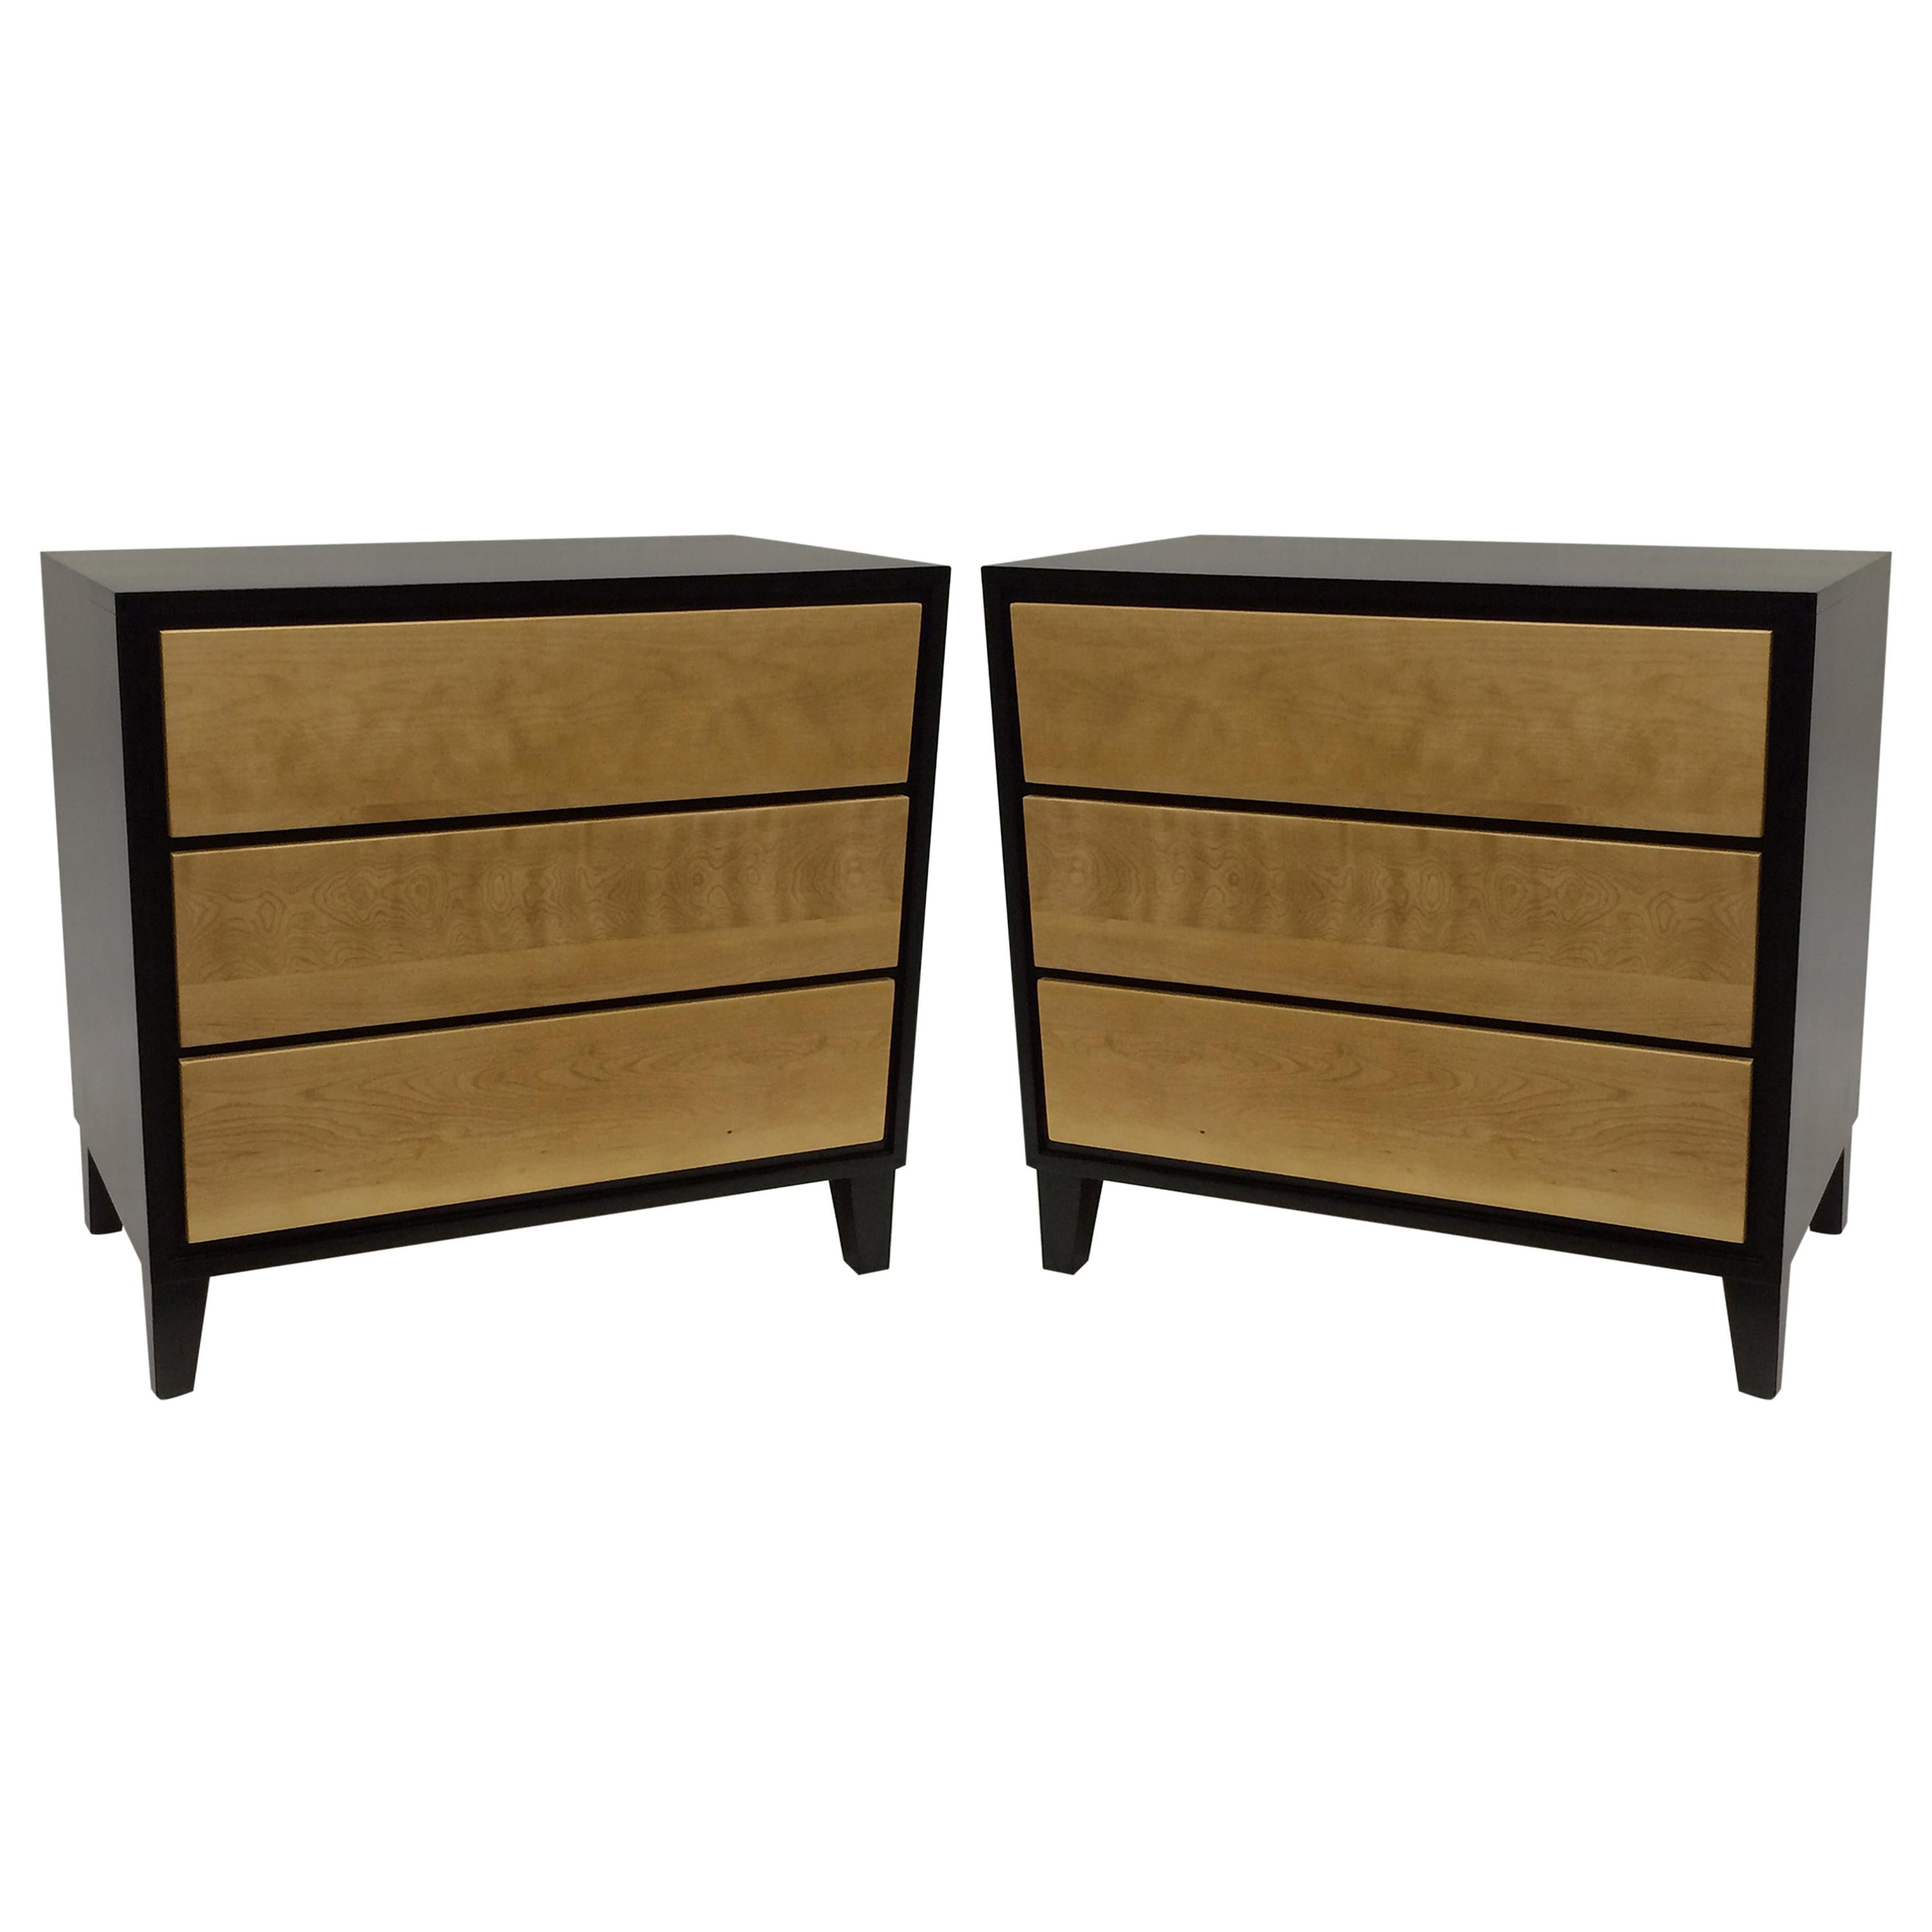 Pair Of Two Tone Maple Wood Nightstands By Russel Wright